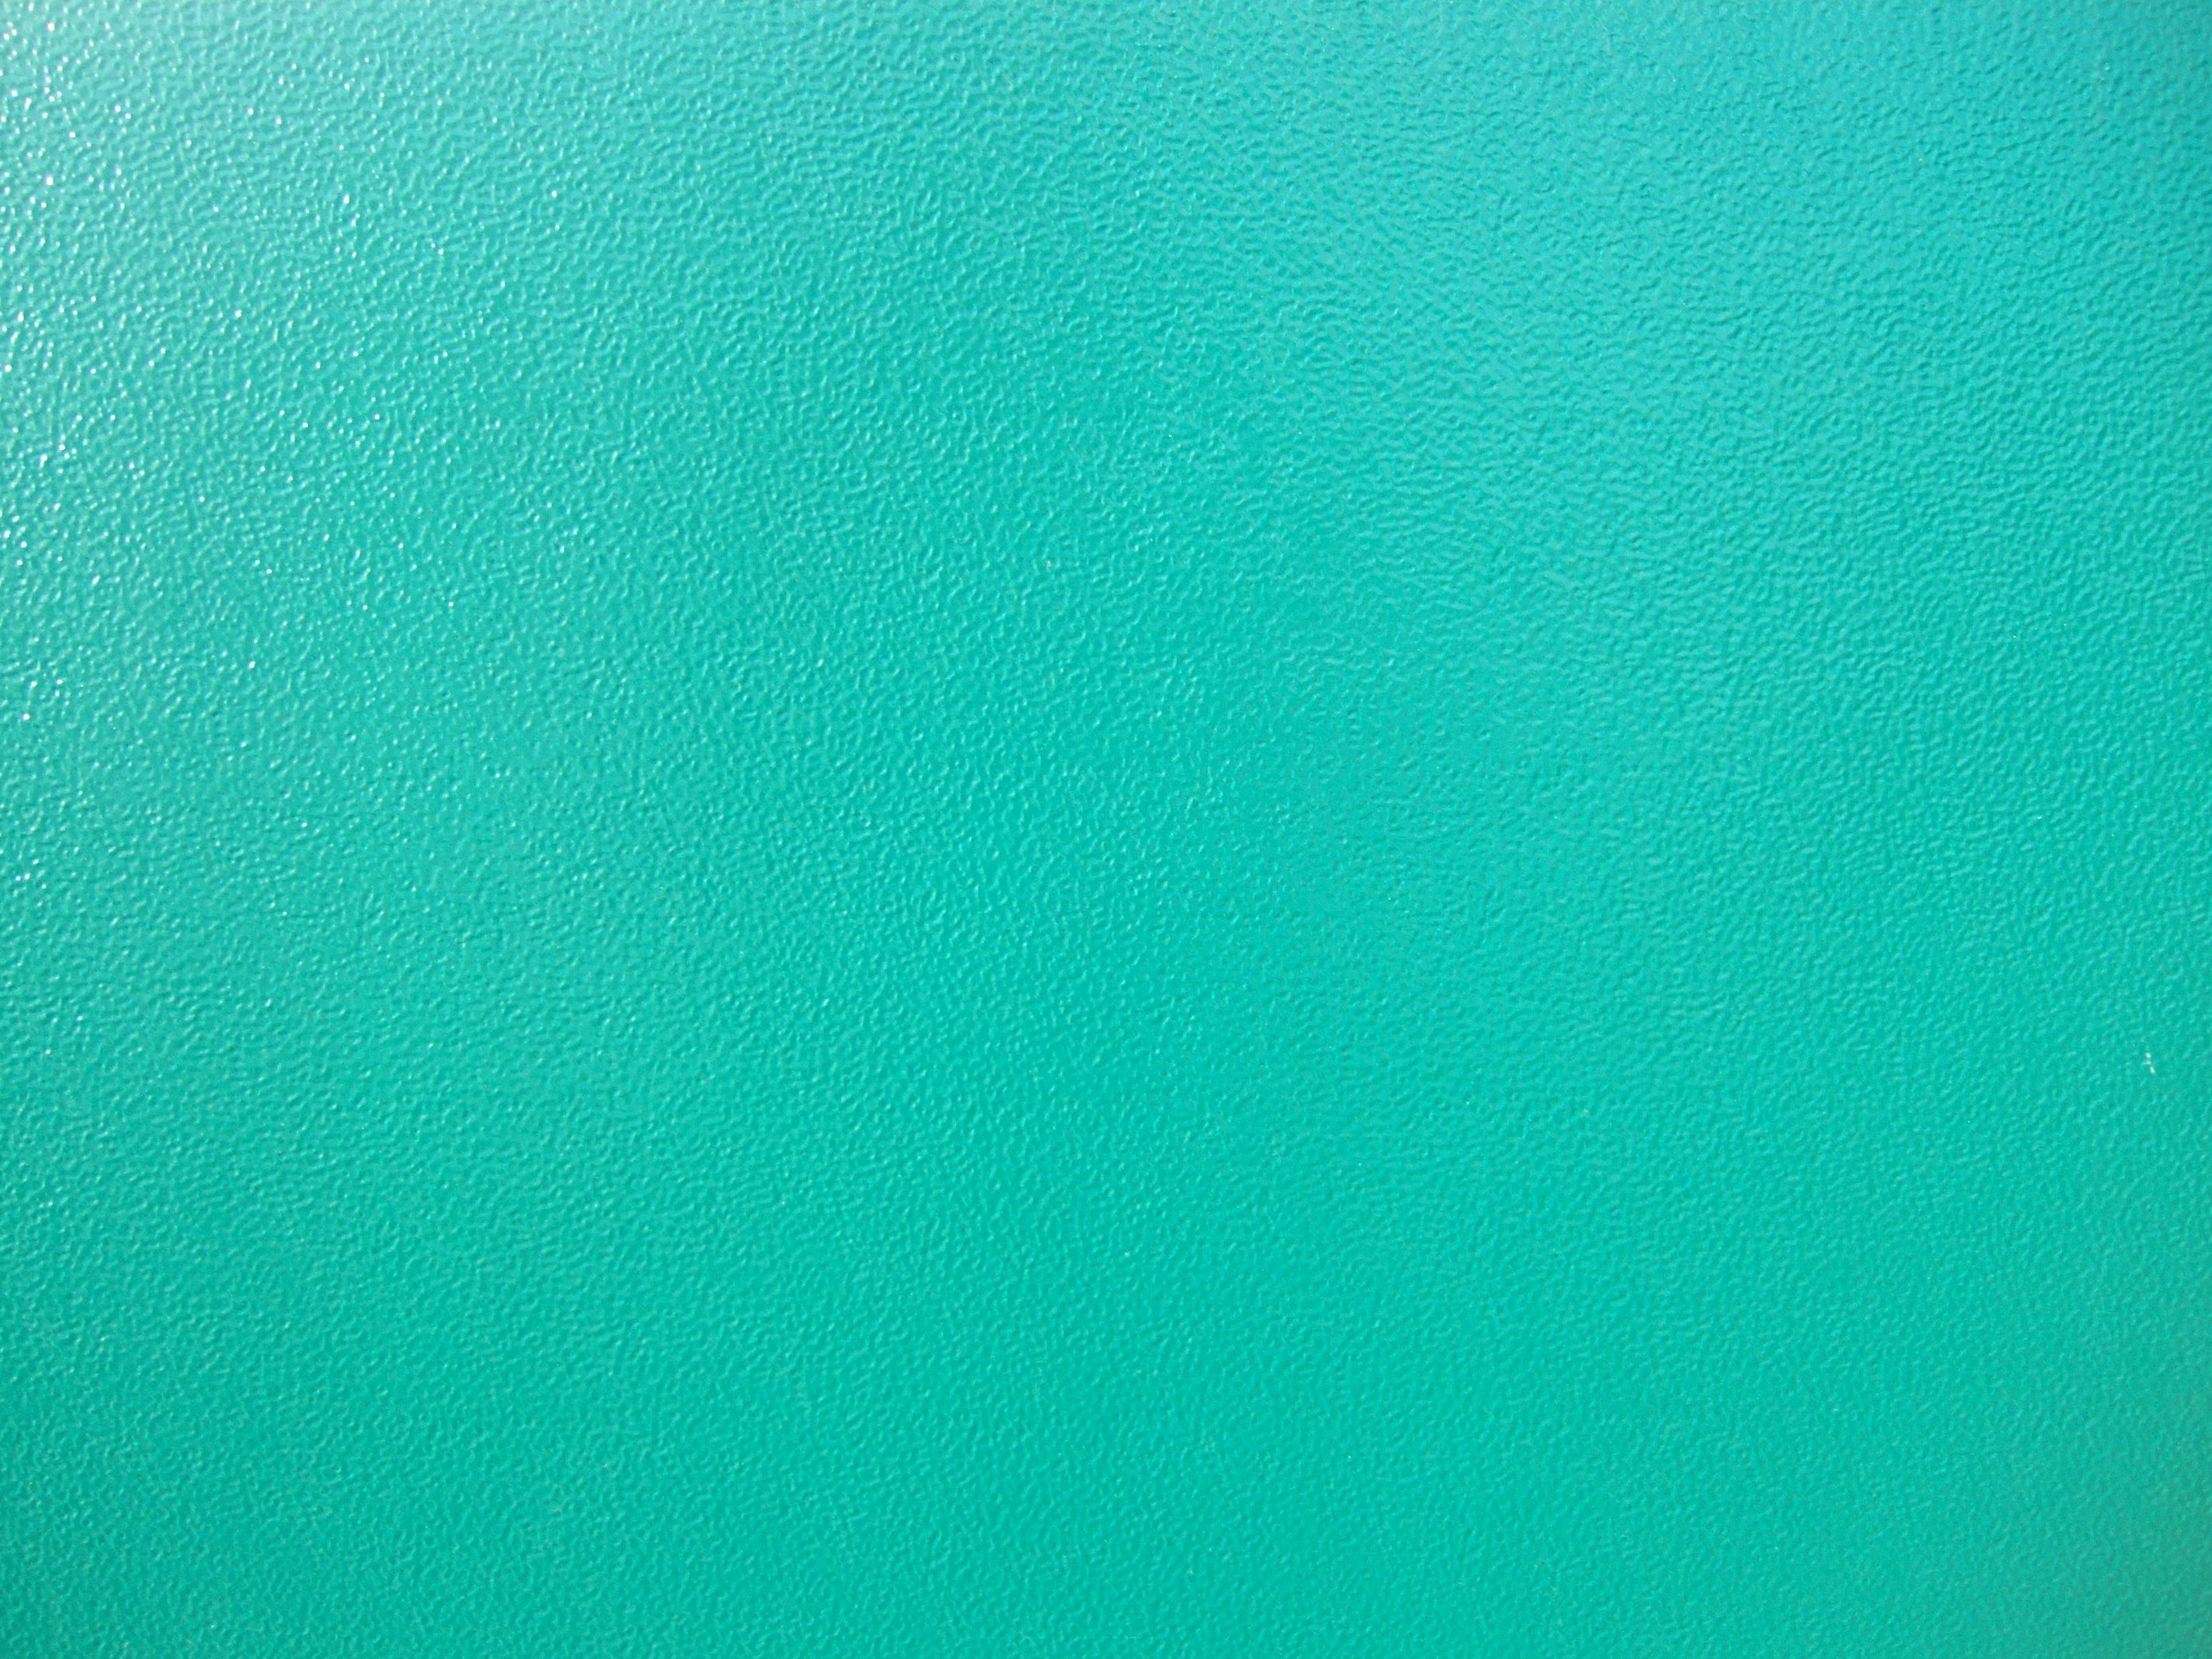 image after photos tabus wall blue green turquoise